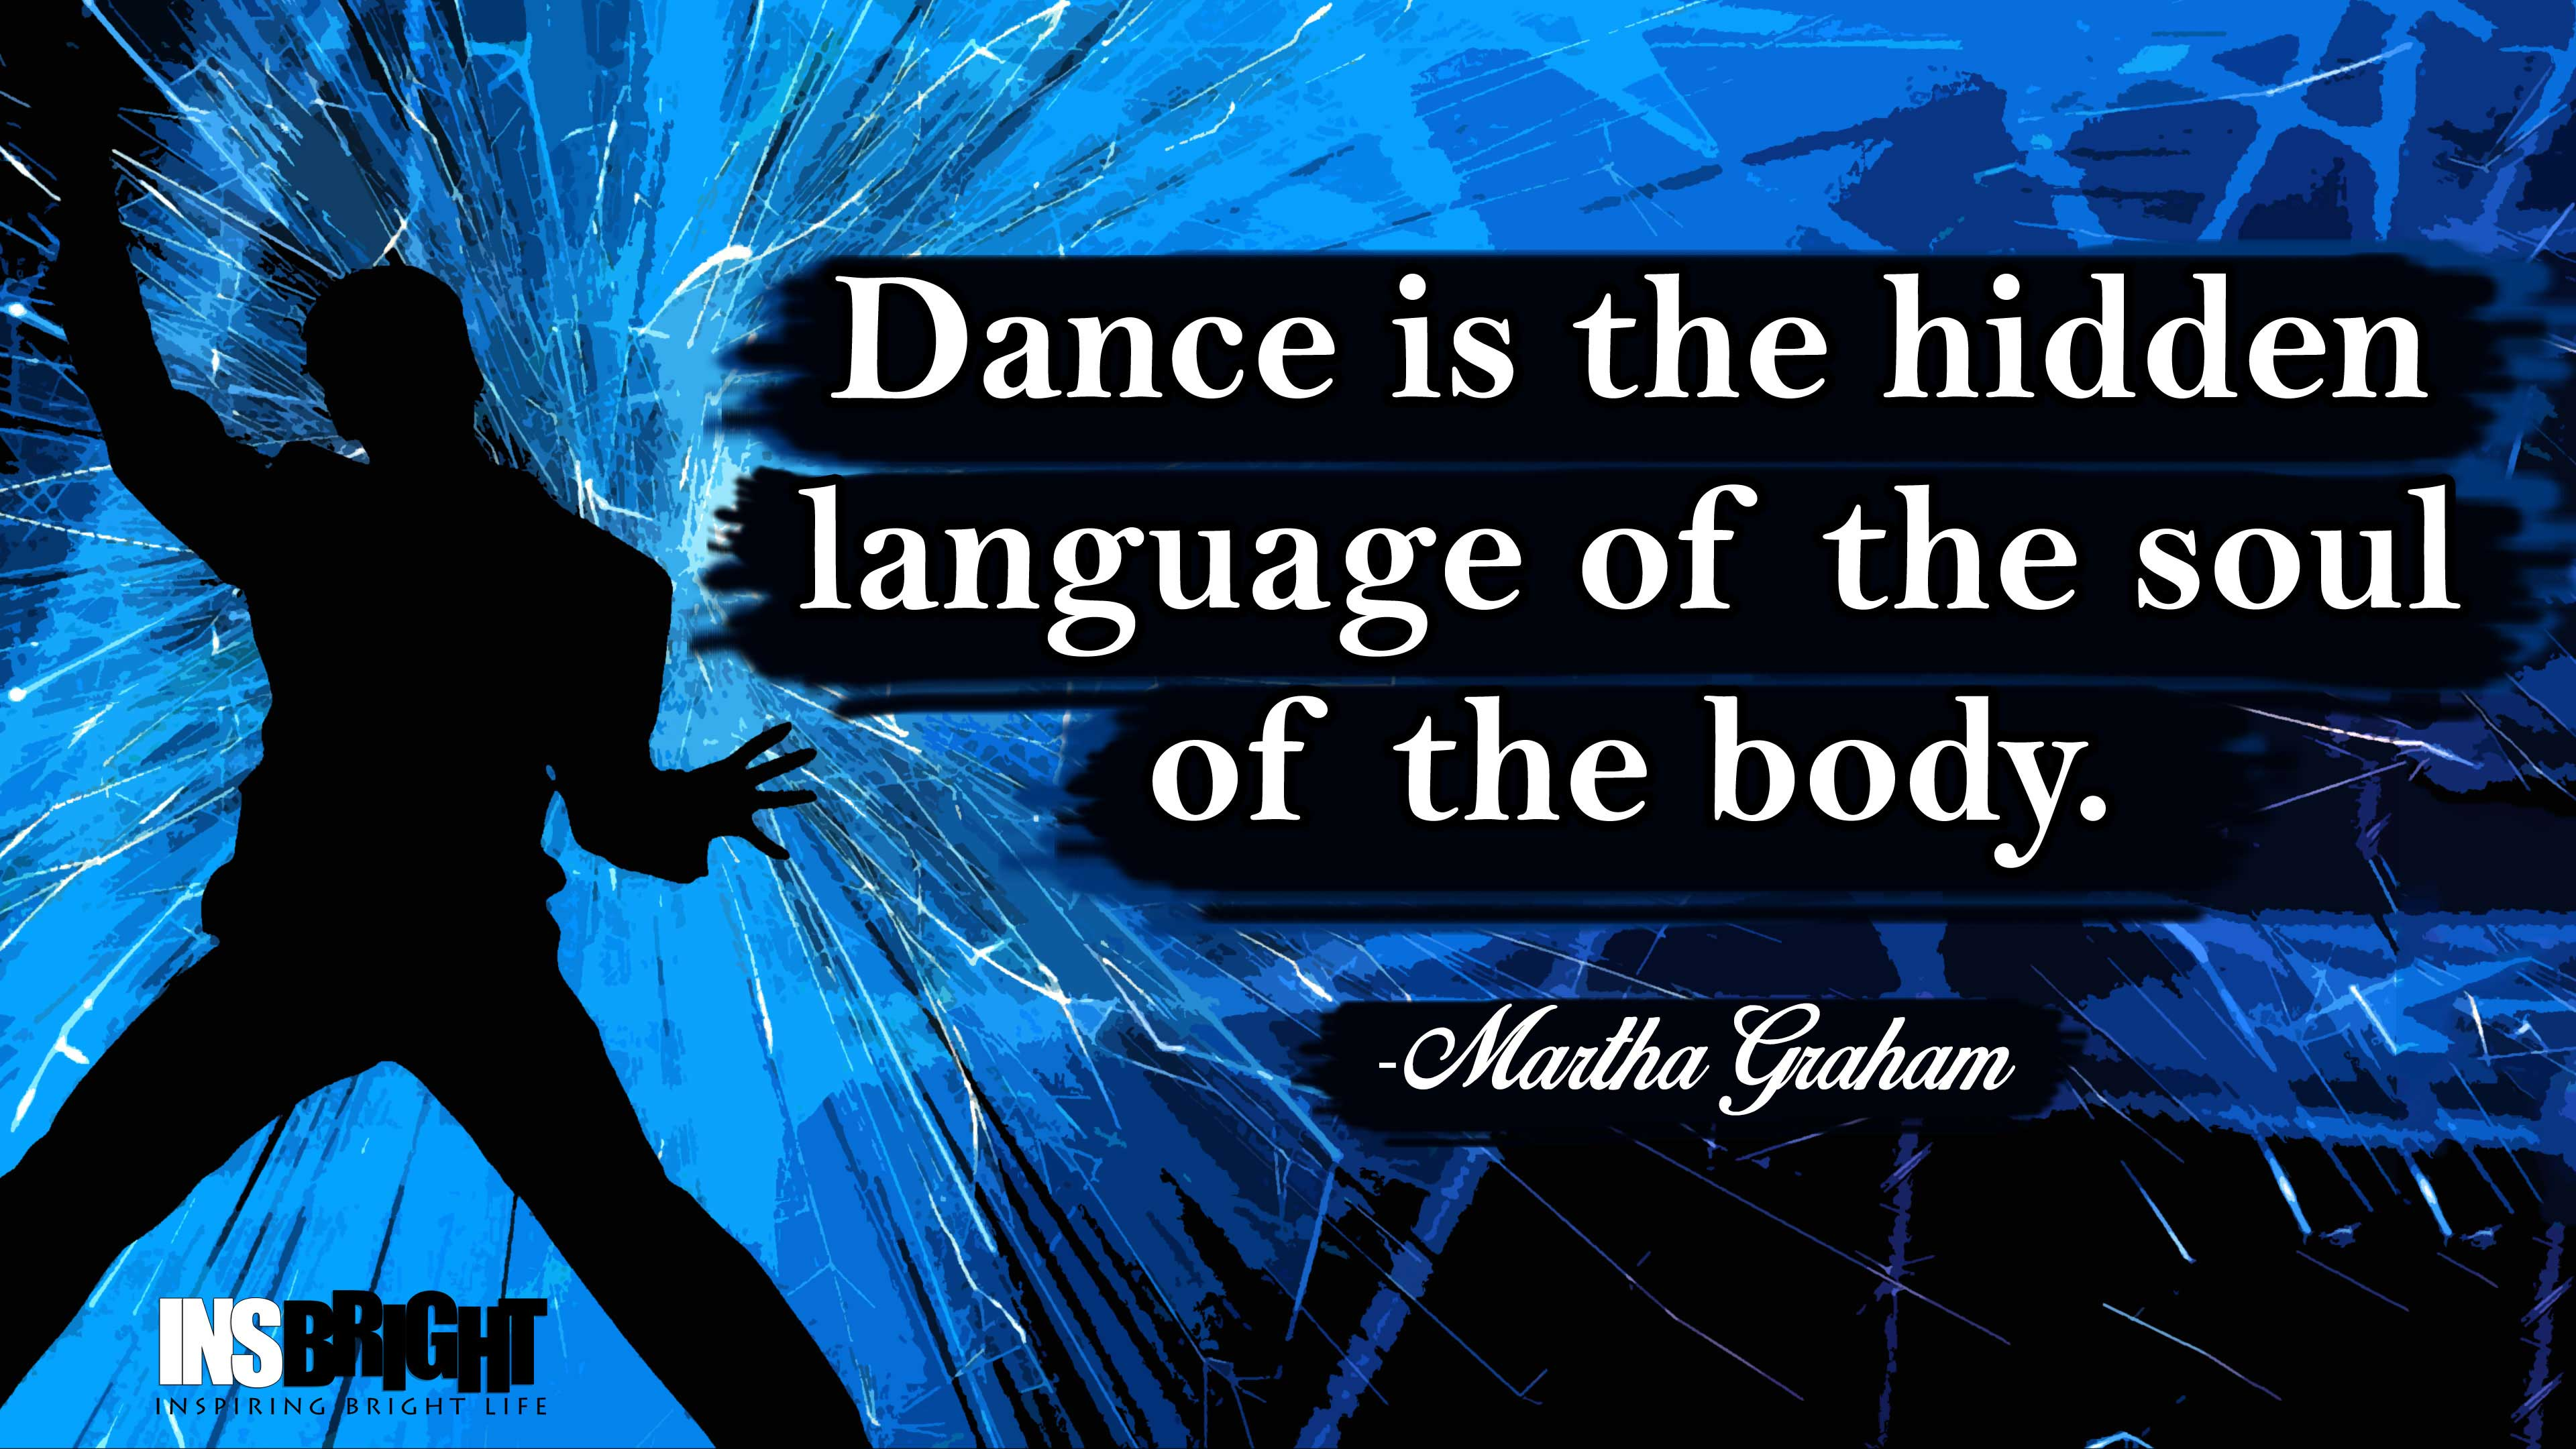 10 Inspirational Dance Quotes Images By Famous Dancer Insbright